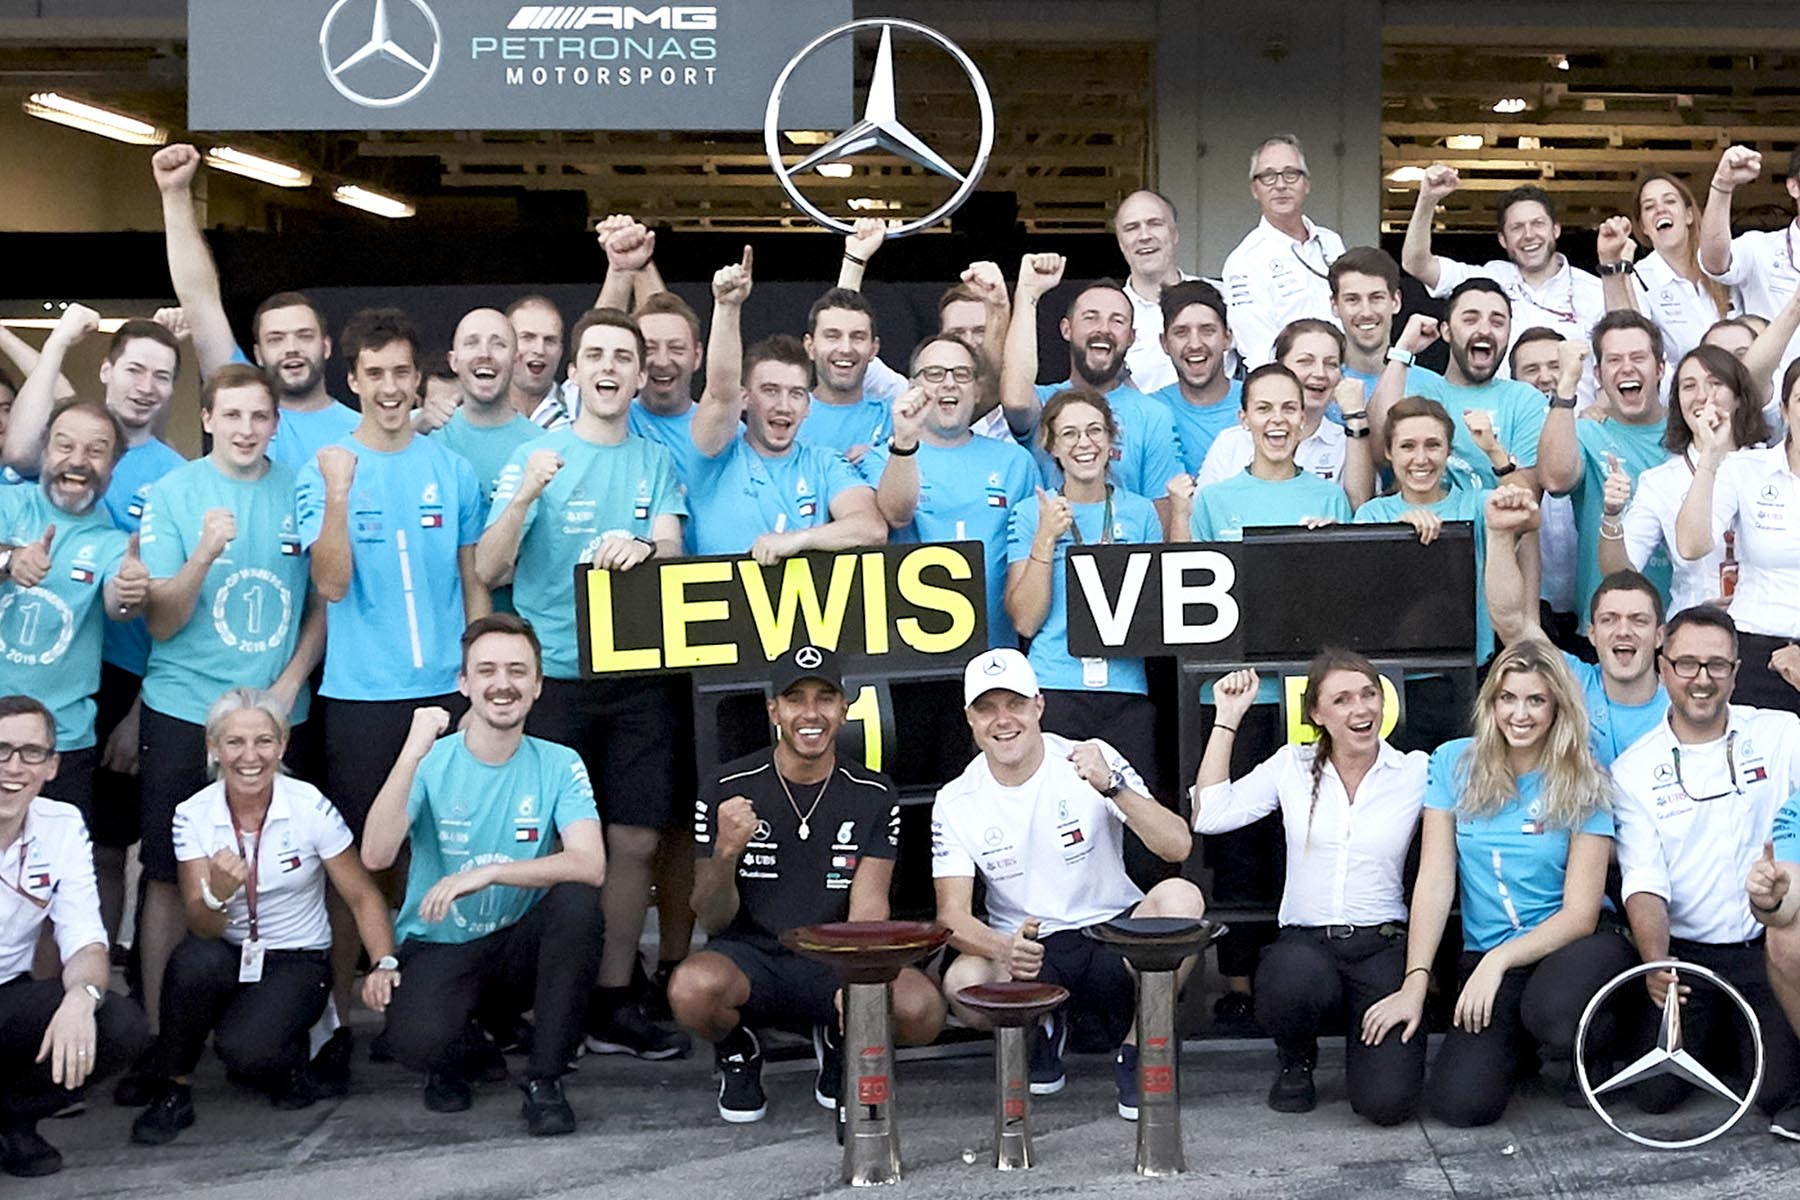 The Mercedes team celebrates victory at the 2018 Japanese Grand Prix.